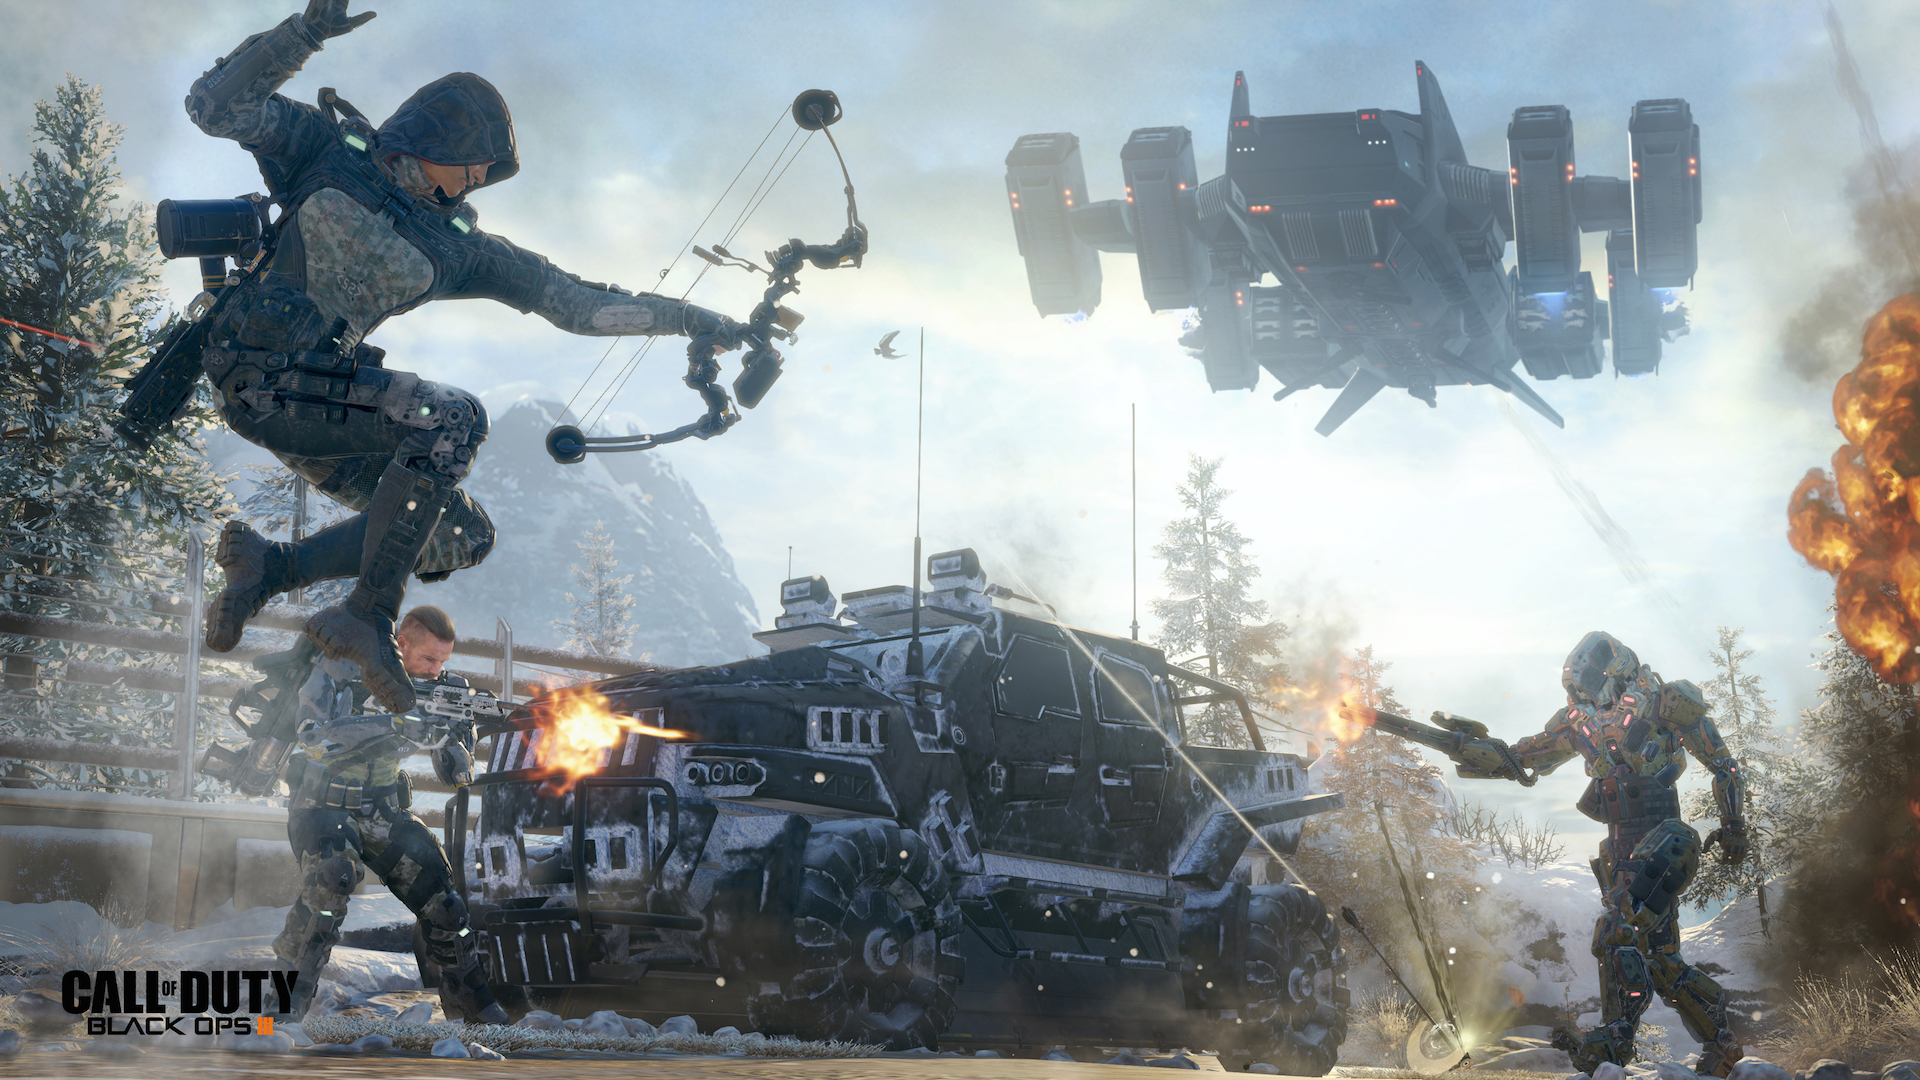 Call of Duty Black Ops III - VGProfessional Review (3)